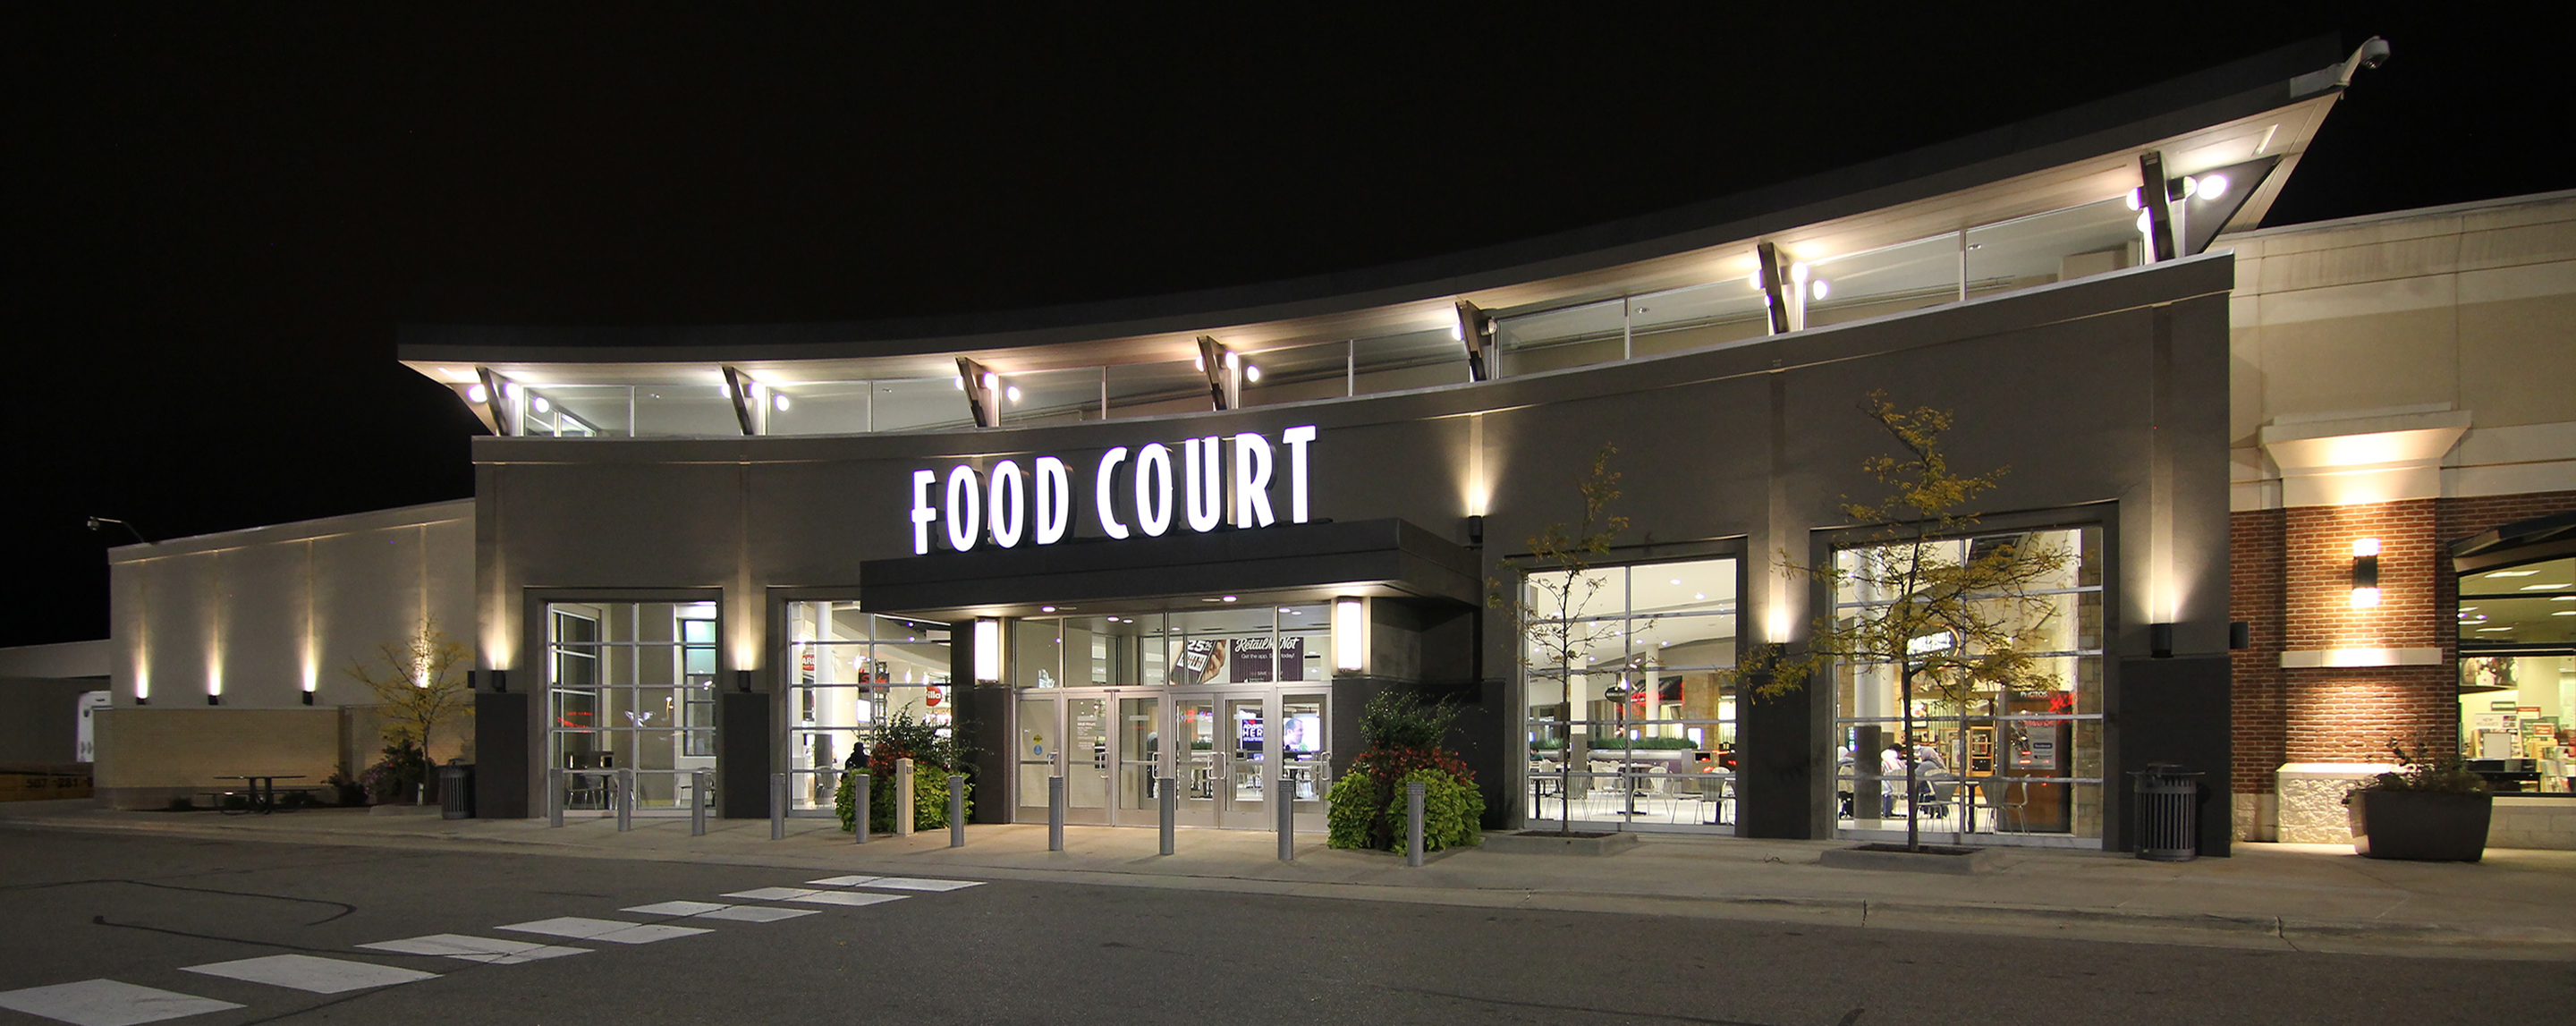 At night, the Apache Mall food court lights up the exterior entrance for visitors and shoppers.